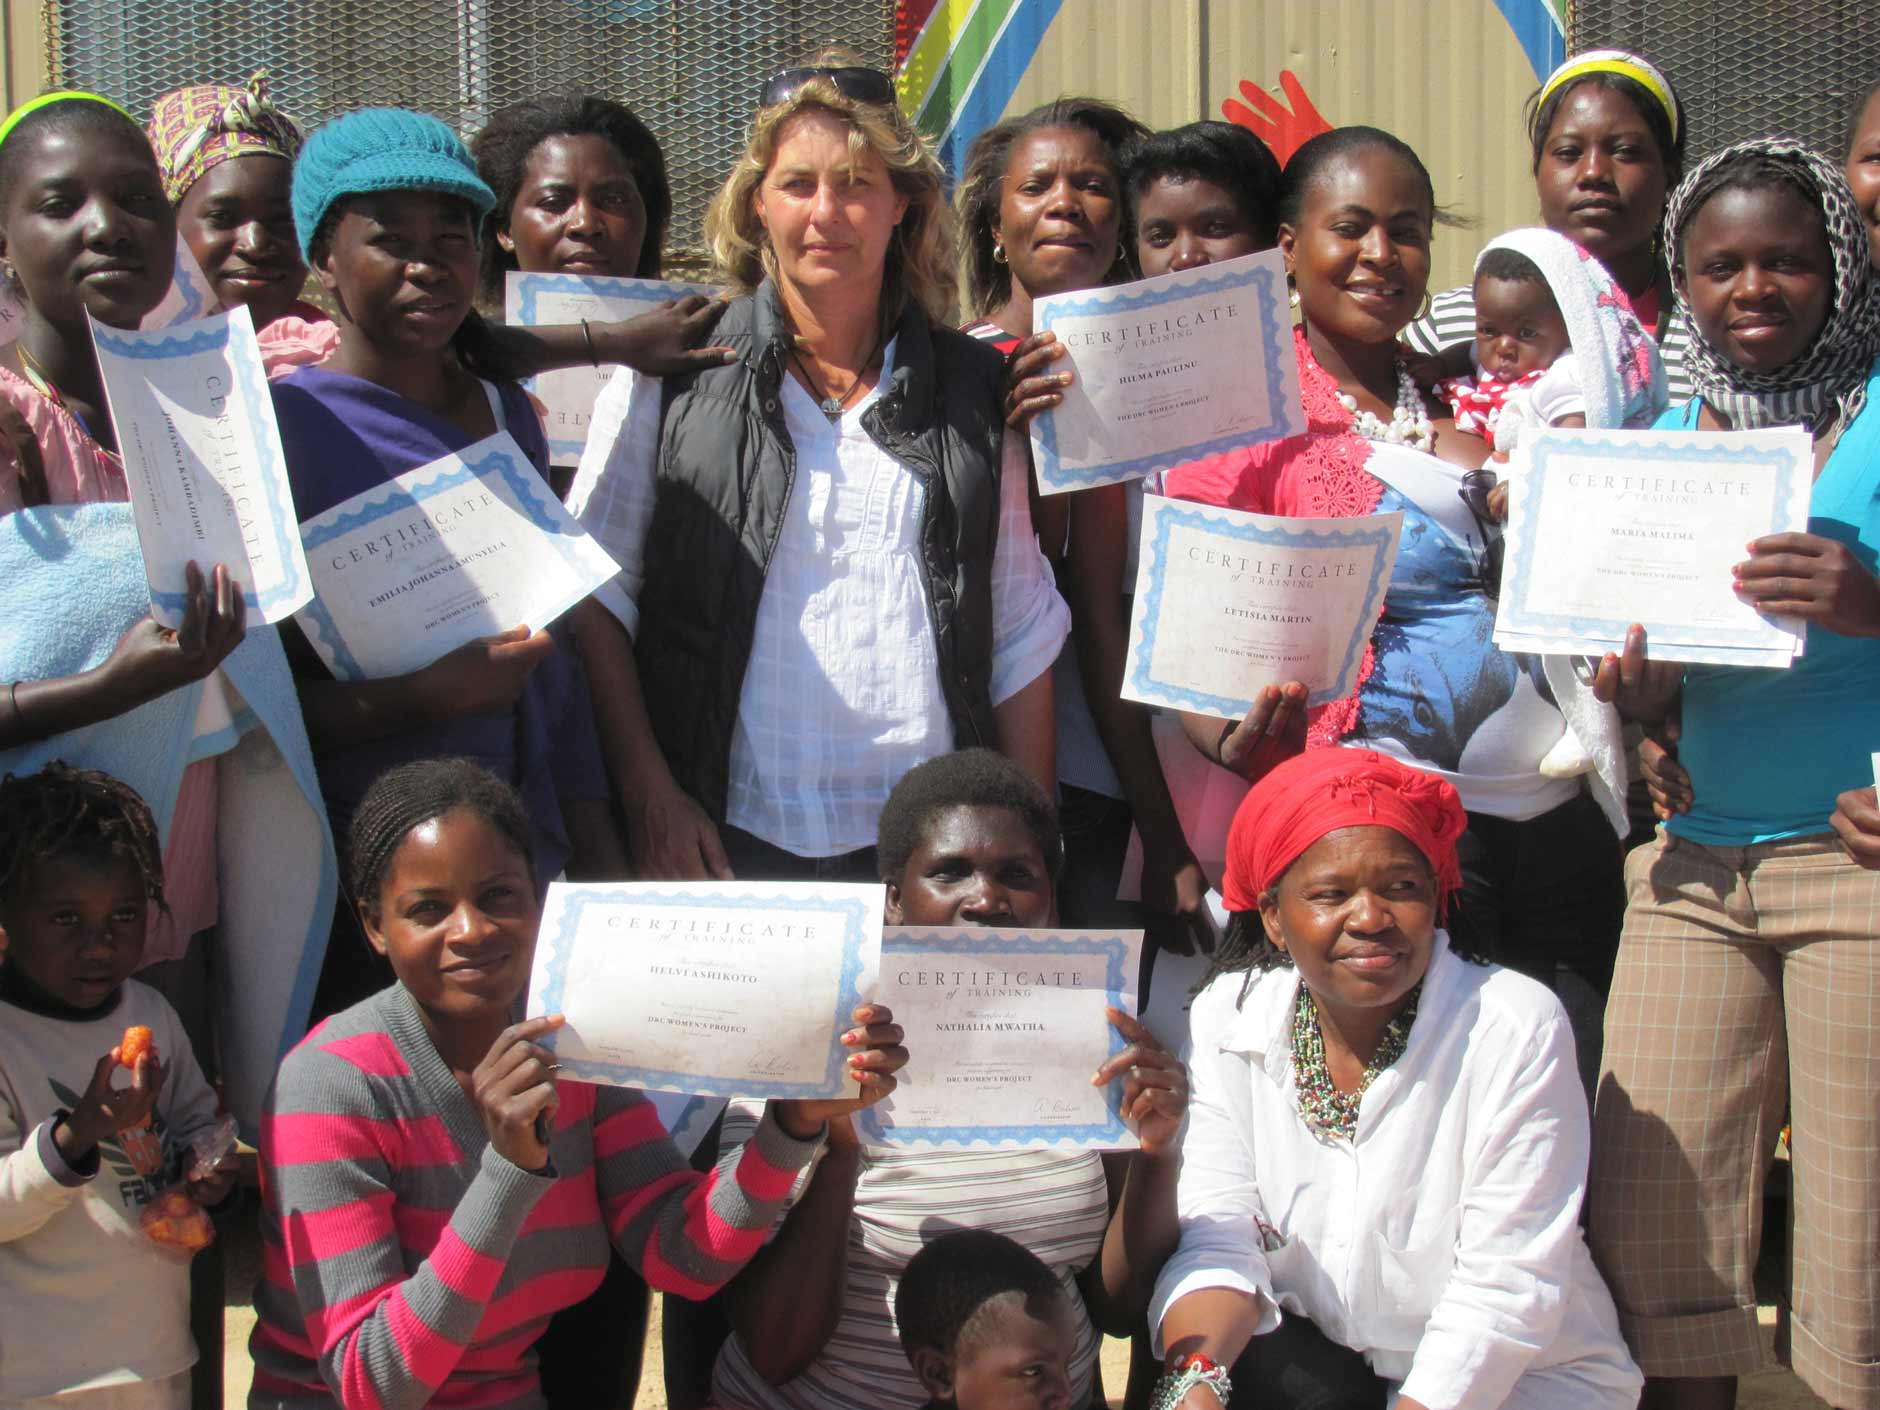 Women got their certificate